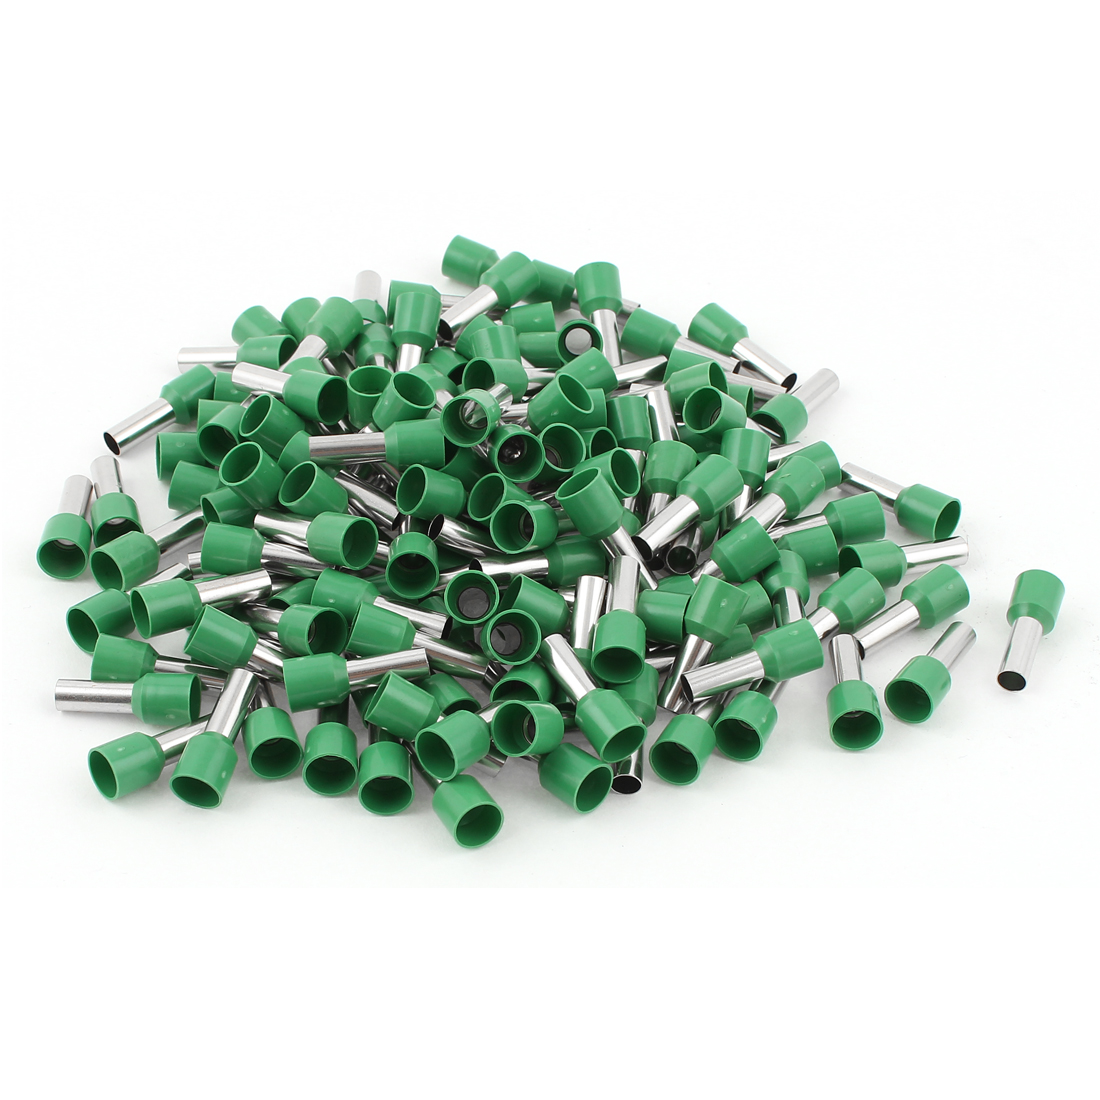 150pcs Green Wire Crimp Connector Insulated Ferrule Cord End Terminal AWG 8